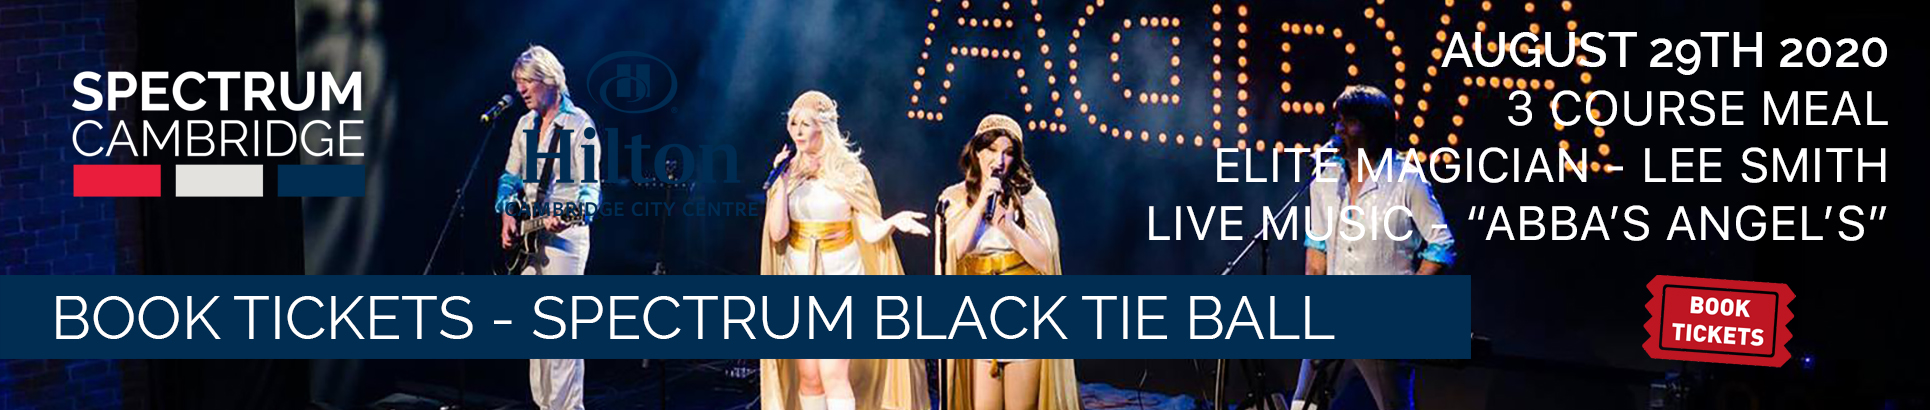 Buy Tickets for the Spectrum Cambridge Black Tie Ball